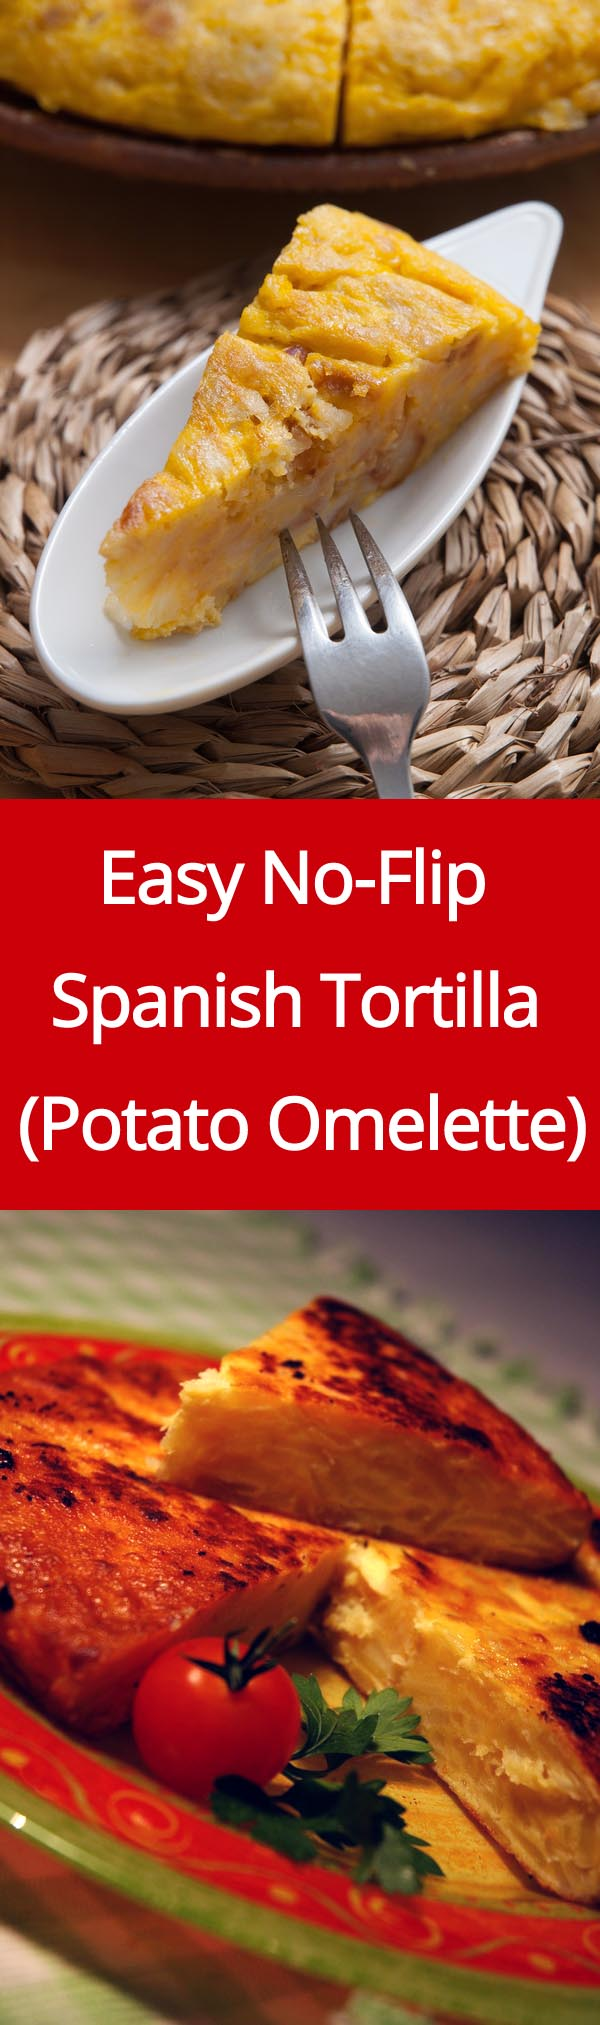 Spanish Tortilla Recipe - this is the easiest recipe for Spanish potato omelette as it doesn't require flipping!   MelanieCooks.com